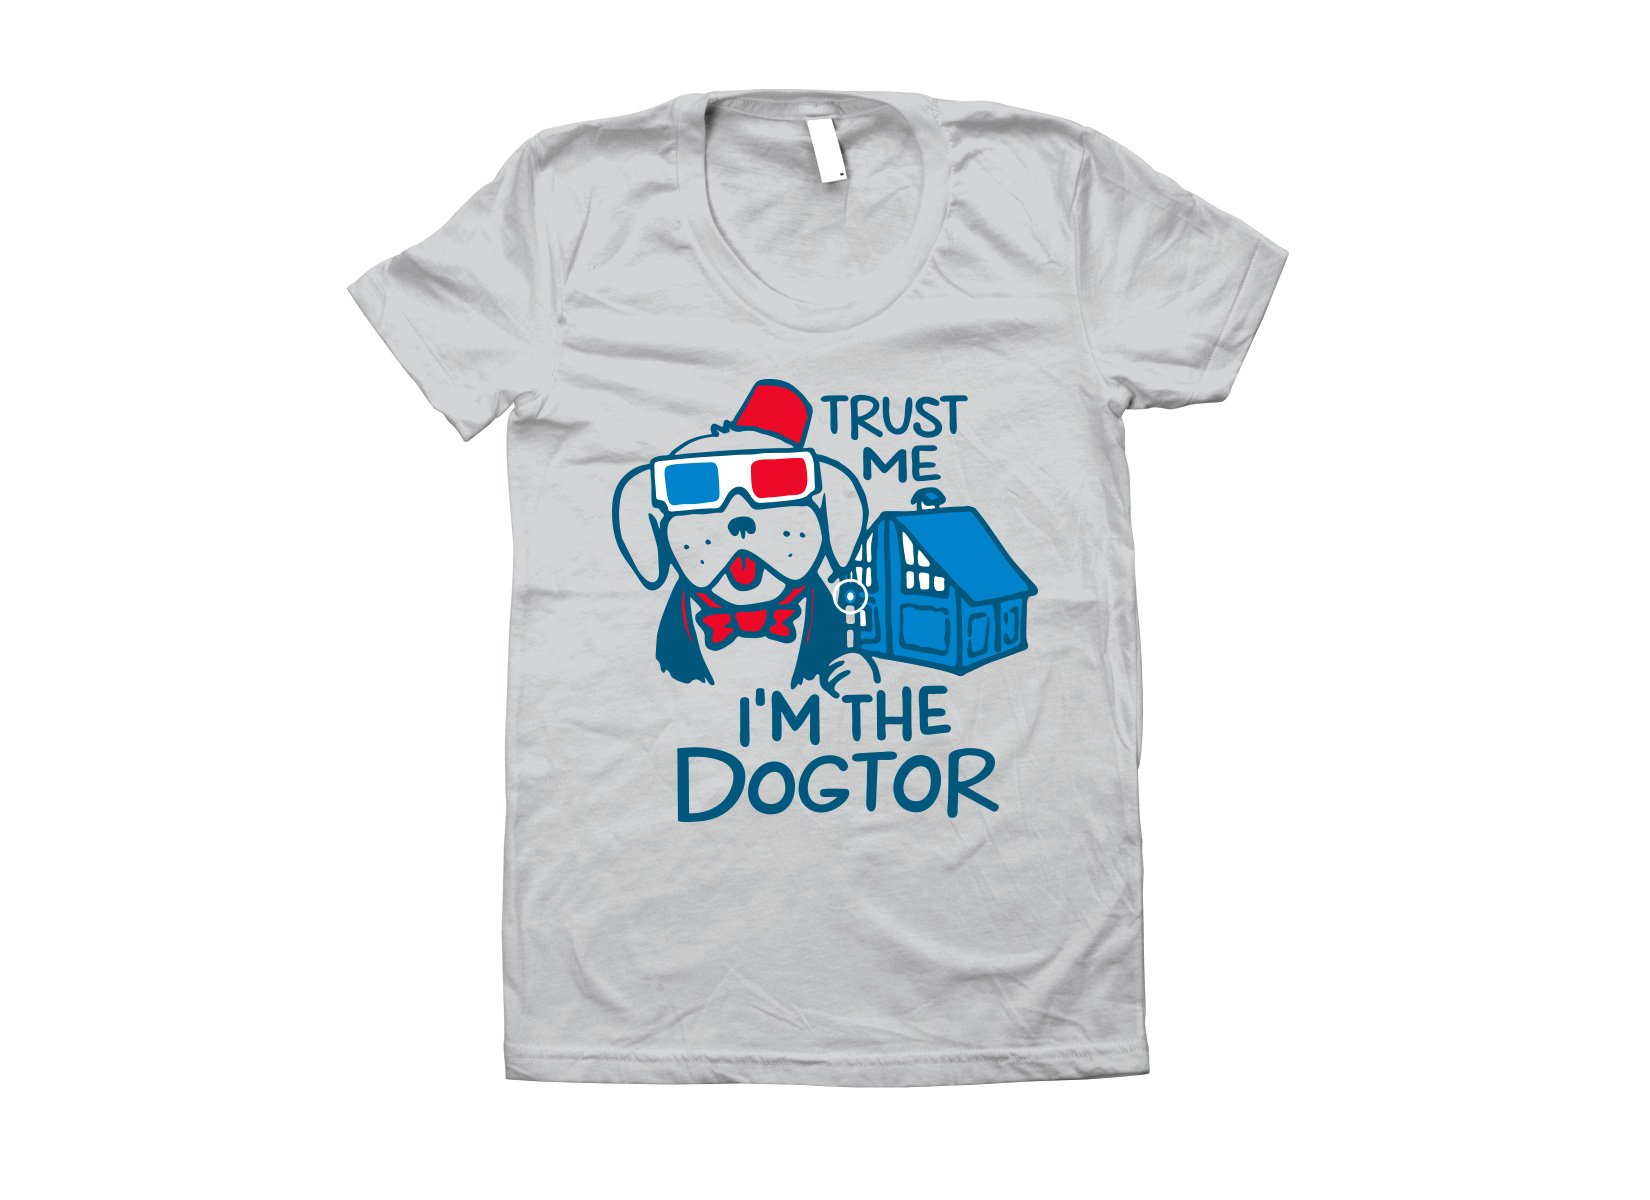 Trust Me, I'm The Dogtor on Juniors T-Shirt